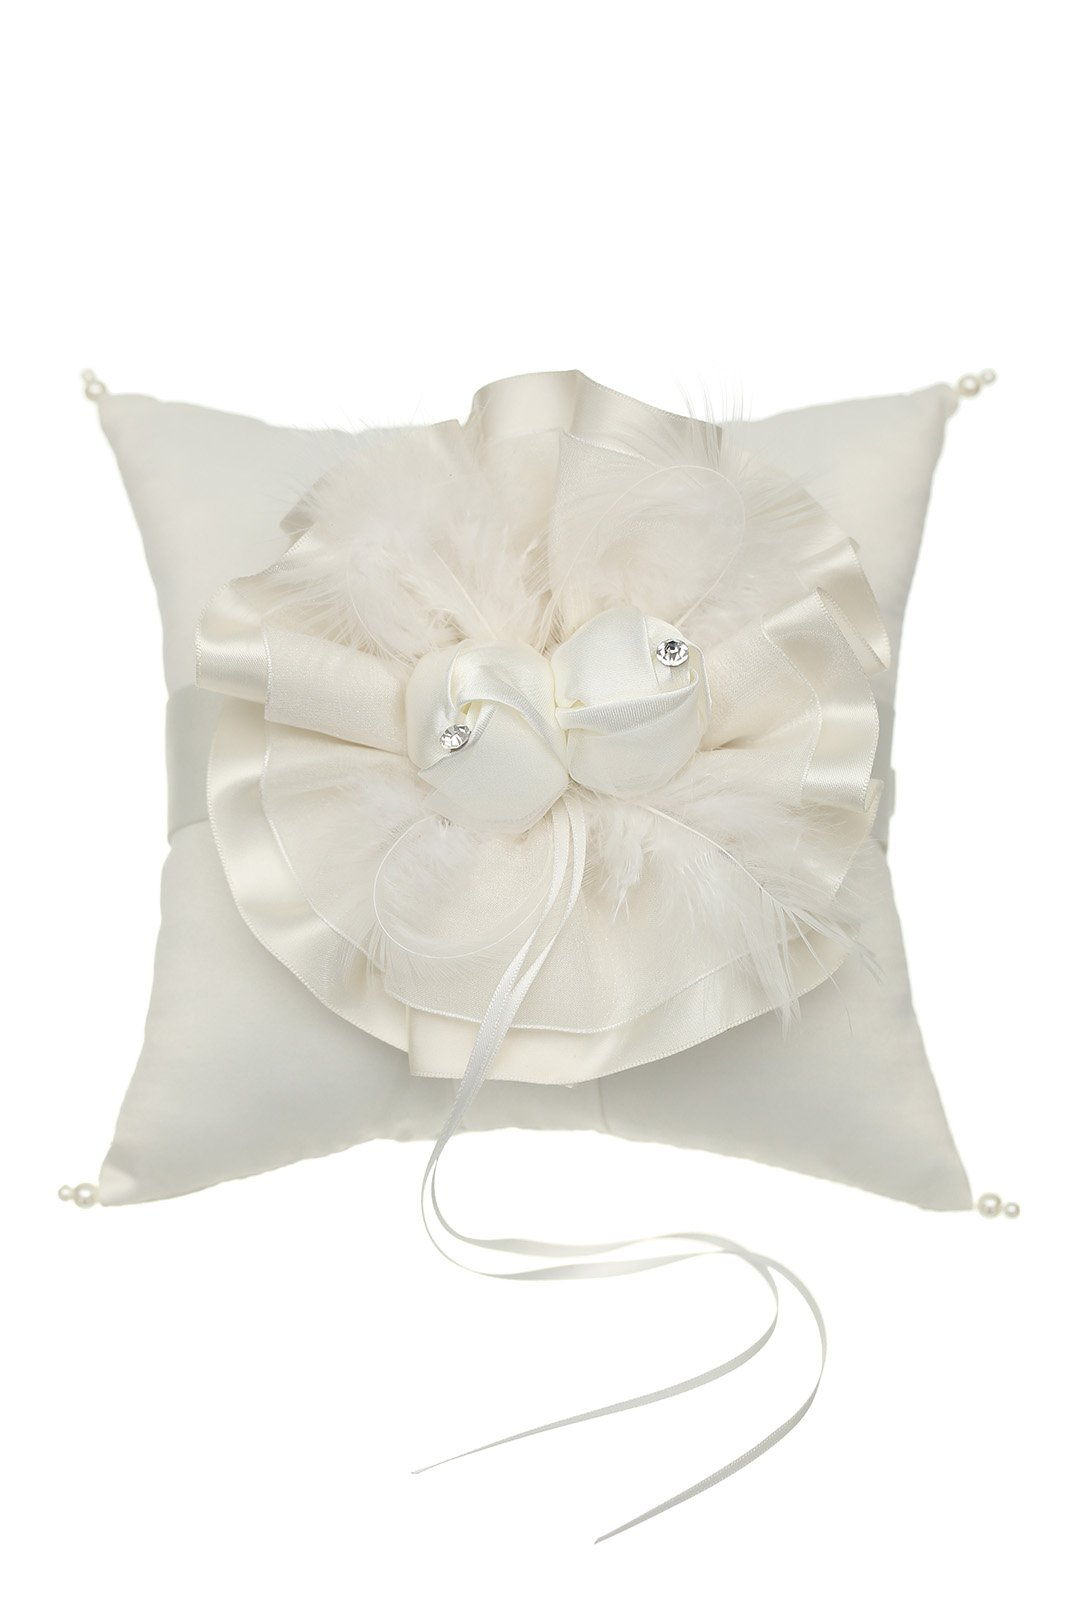 Venus Jewelry Satin Flower with Feathers Pearl Wedding Ring Bearer Pillow 7 Inch x 7 Inch - Ivory RP006I